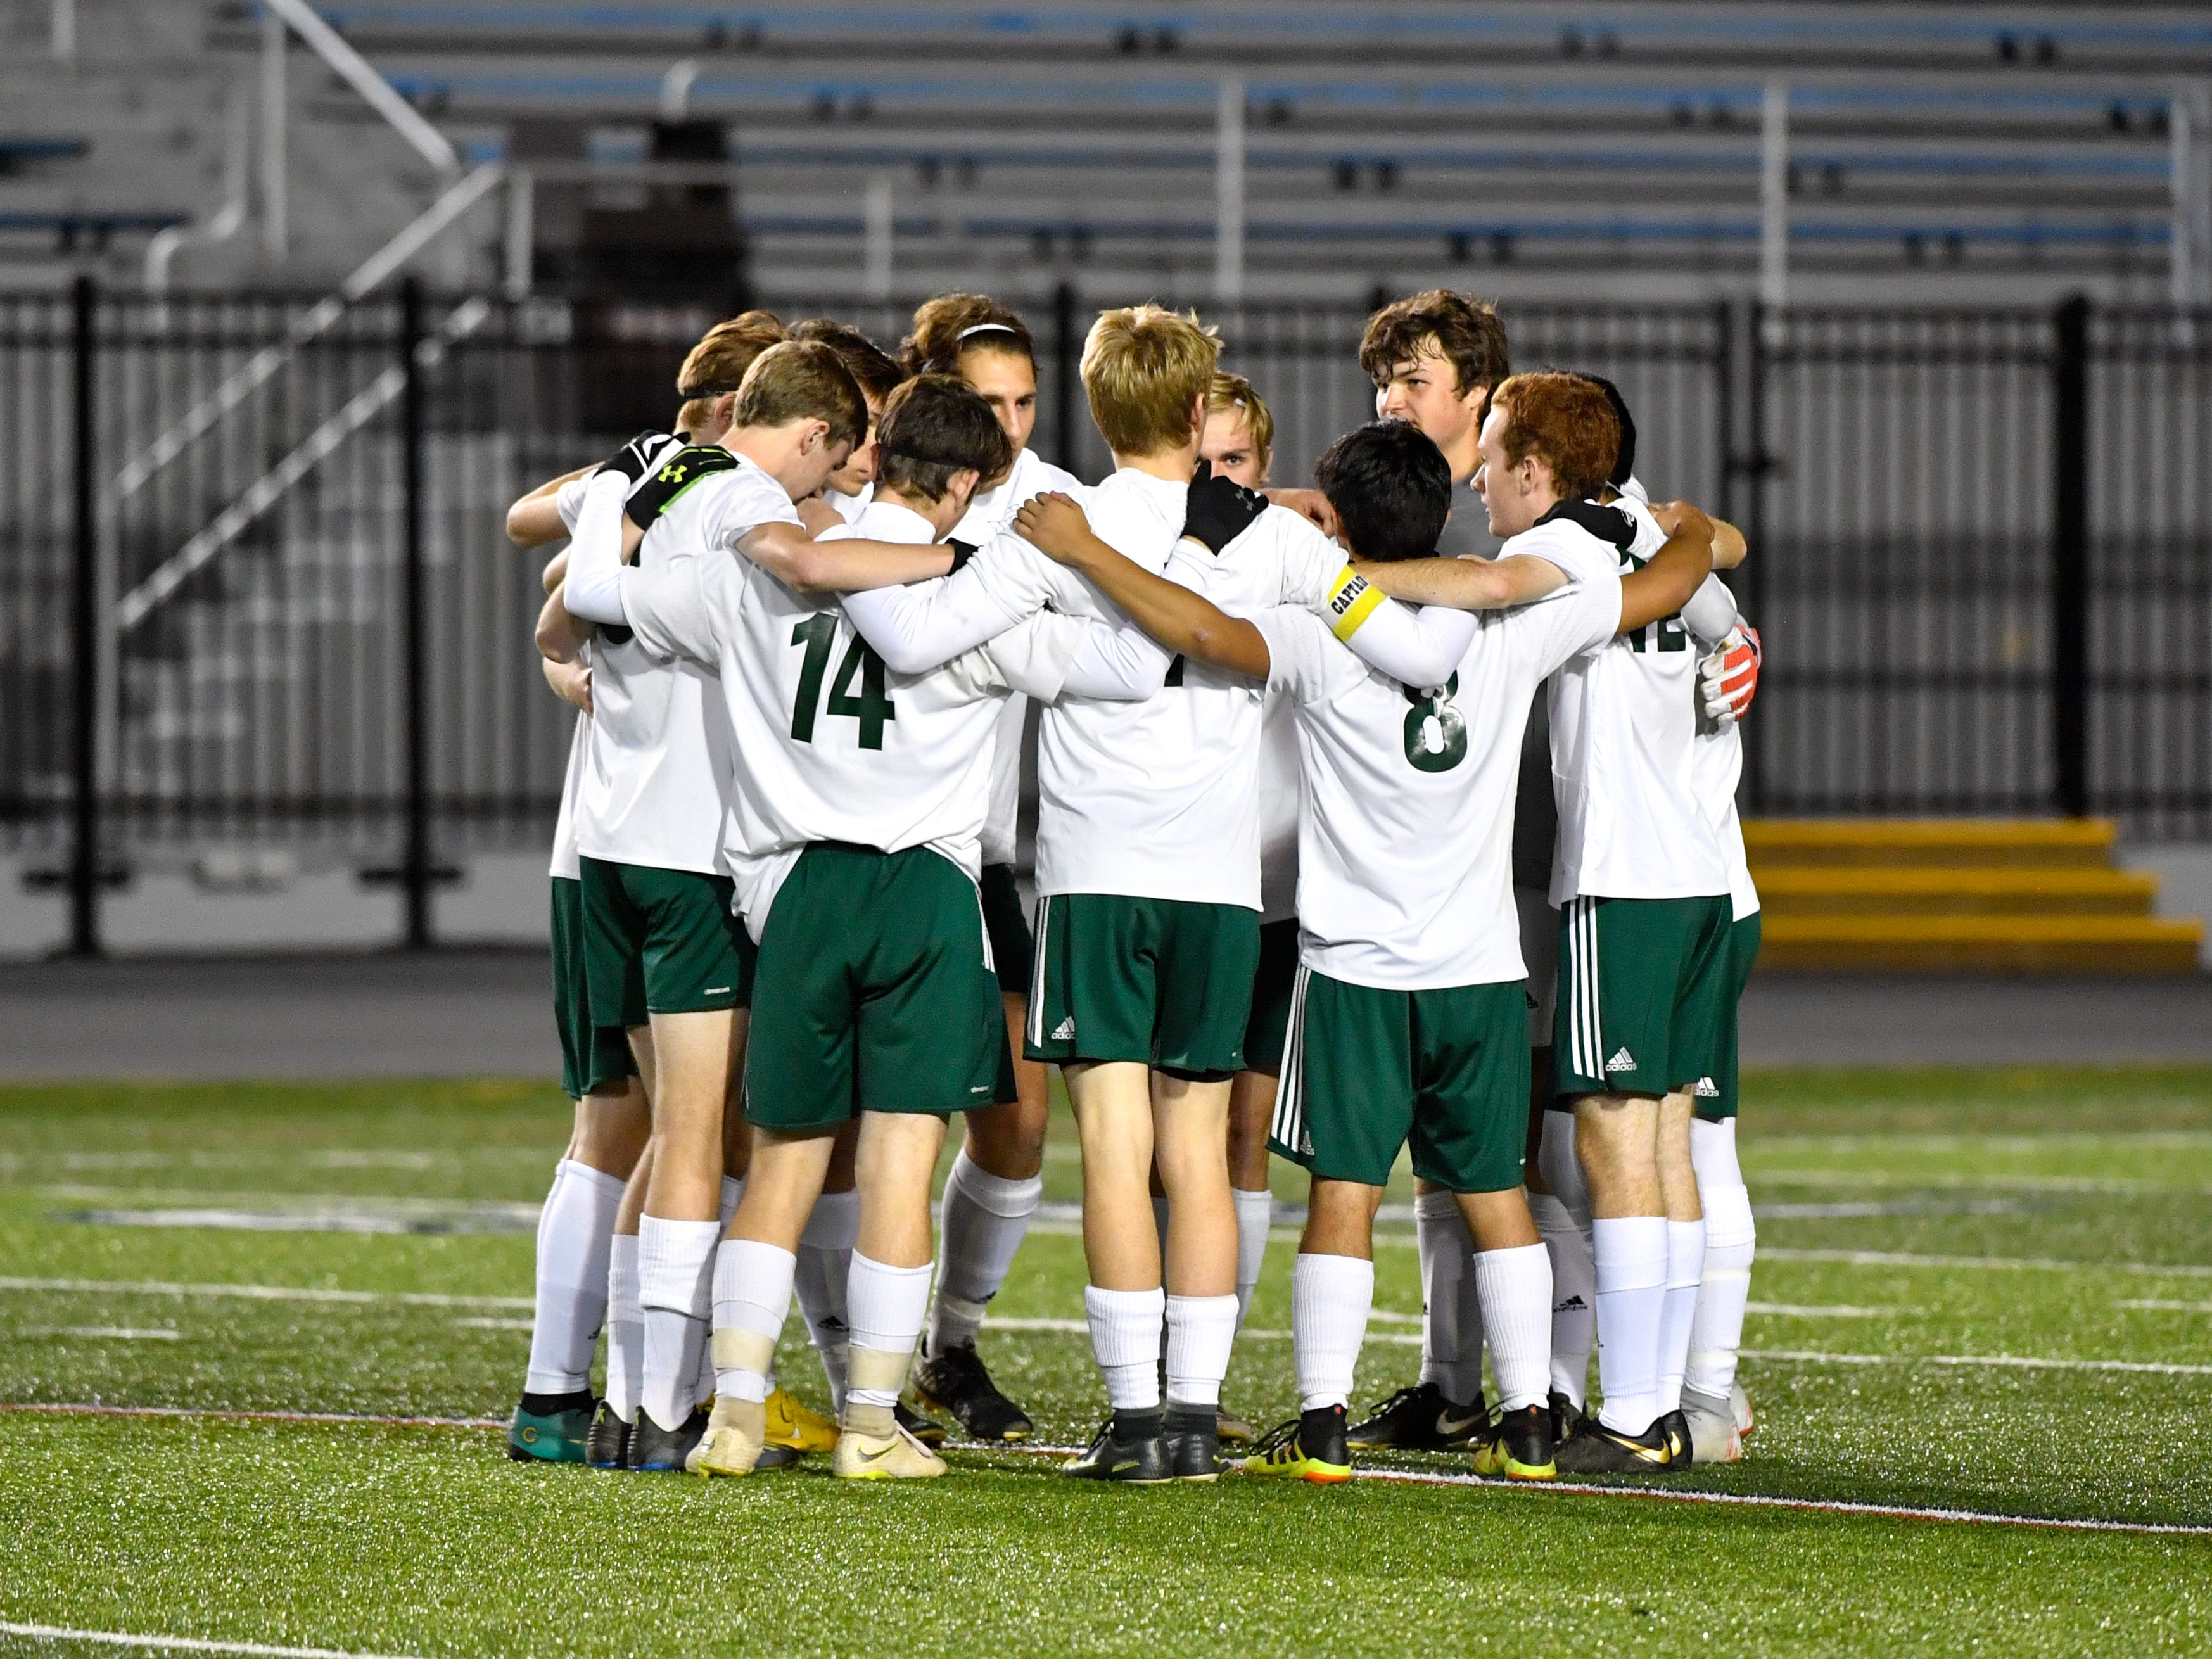 York Catholic huddles up before kick off to start the District 3 Class 1A boys' soccer finals between York Catholic and Camp Hill at Hersheypark Stadium, October 31, 2018. The Lions beat the Fighting Irish 2-0.